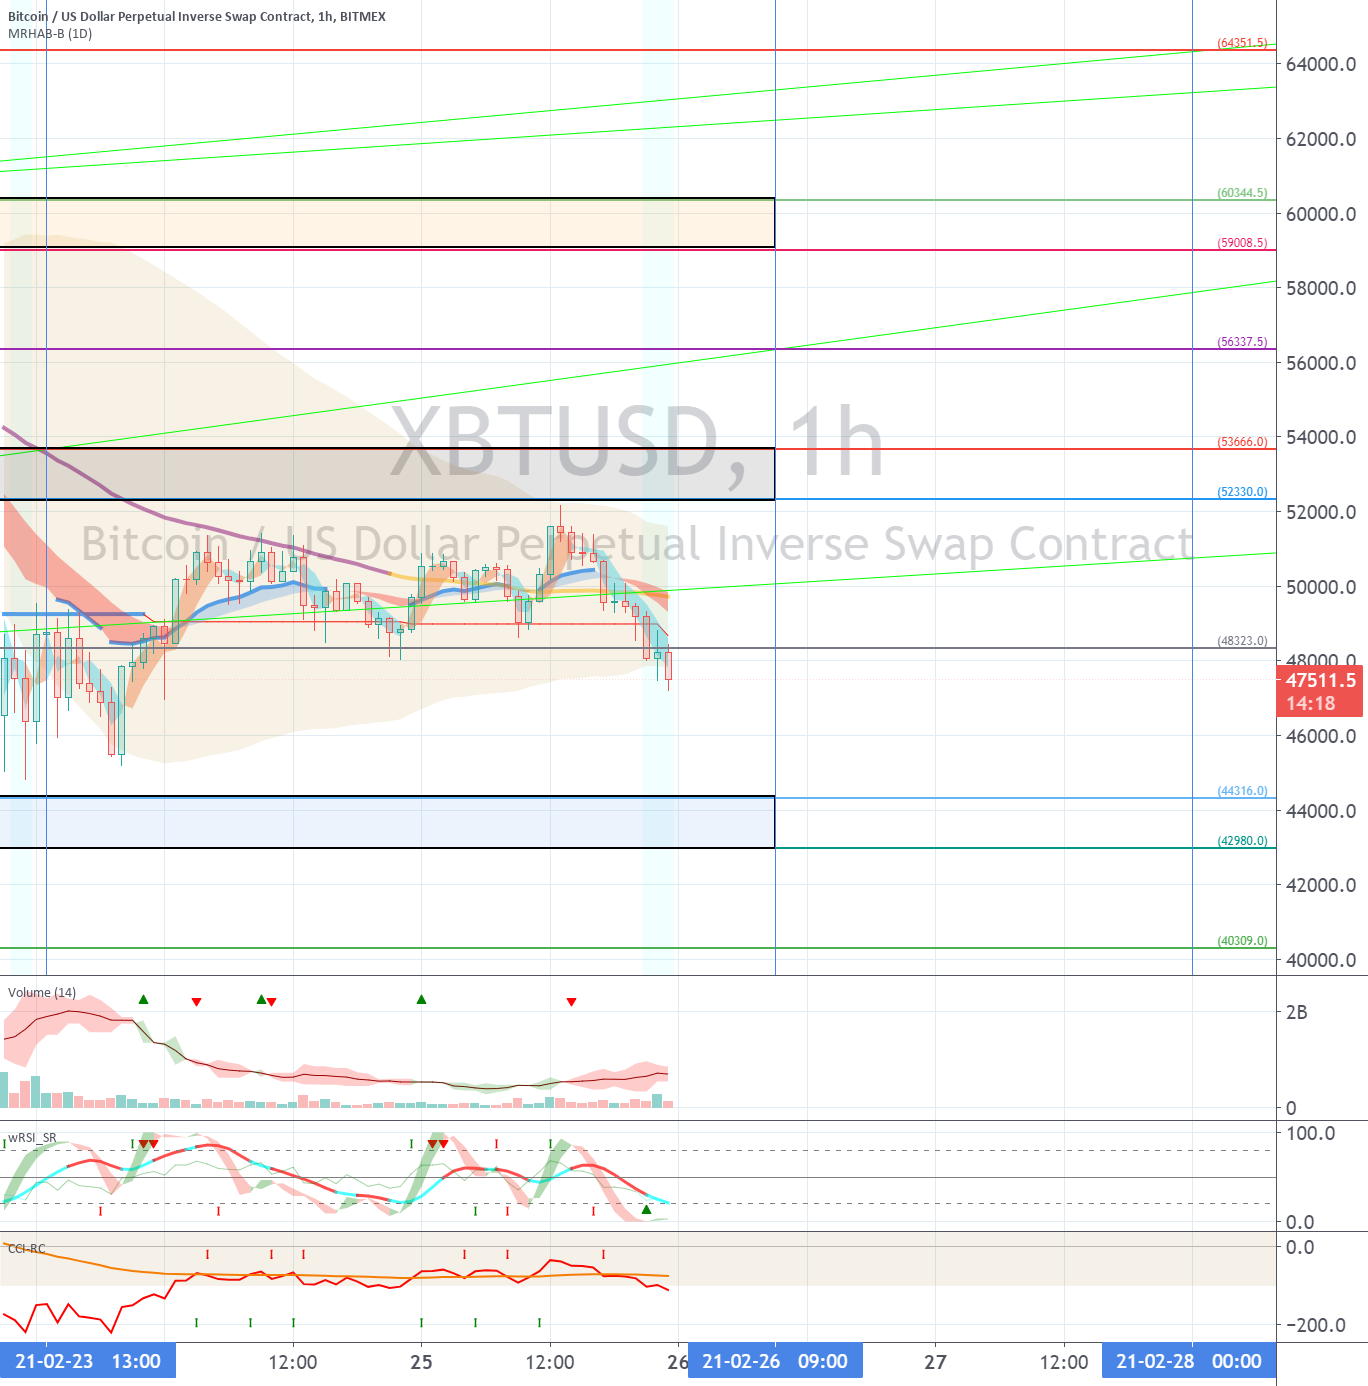 XBTUSD (Short Term Strategy) - February 26